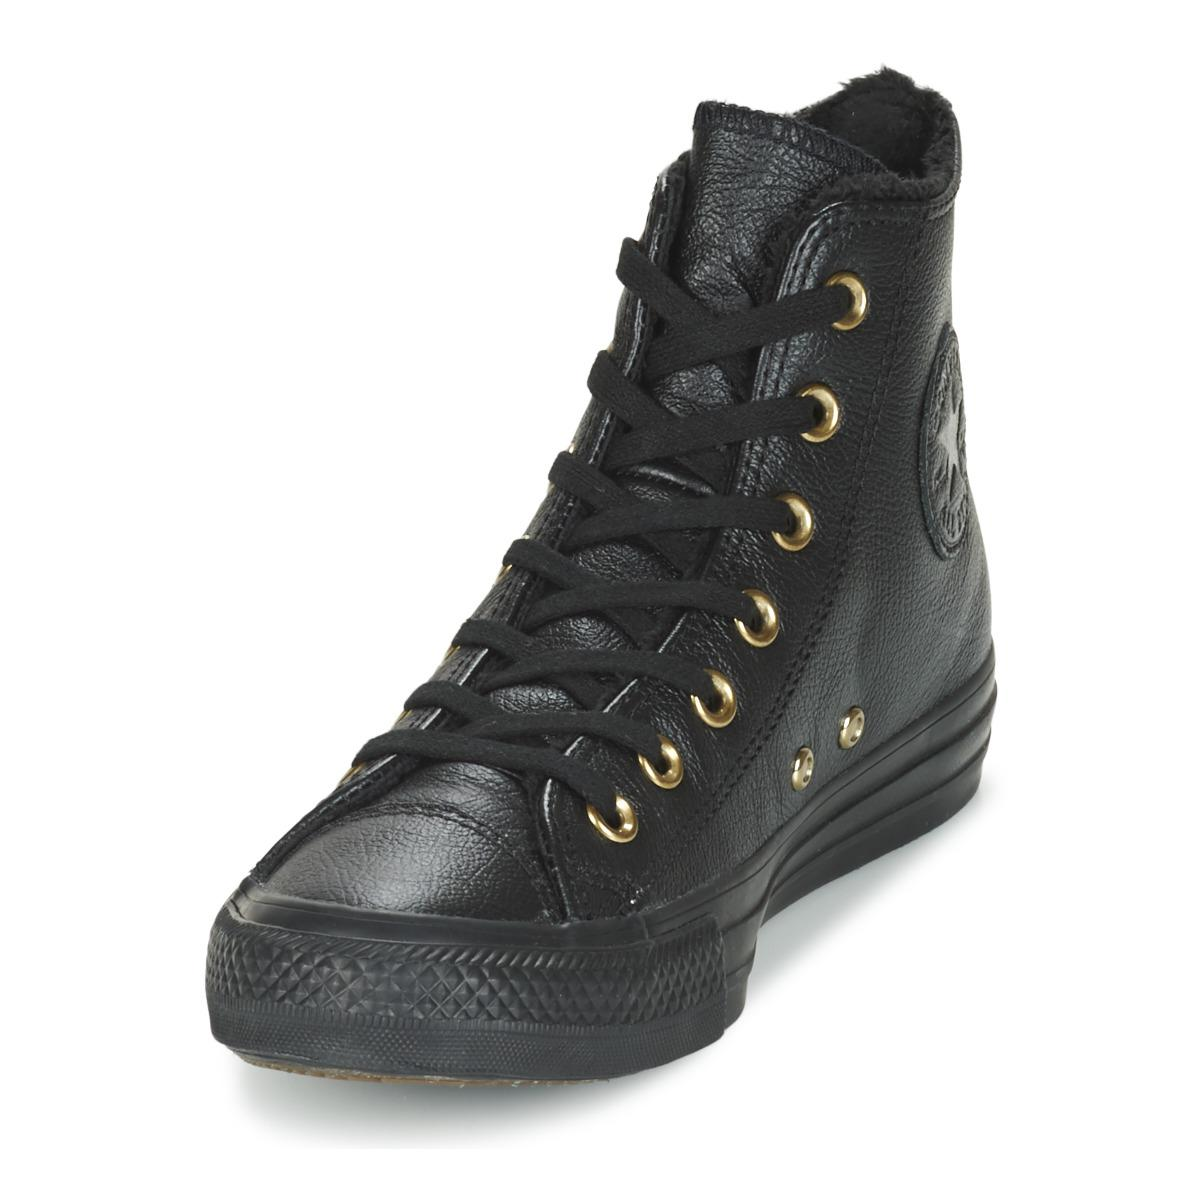 Converse Chuck Taylor All Star High-top Leather Sneakers in Black